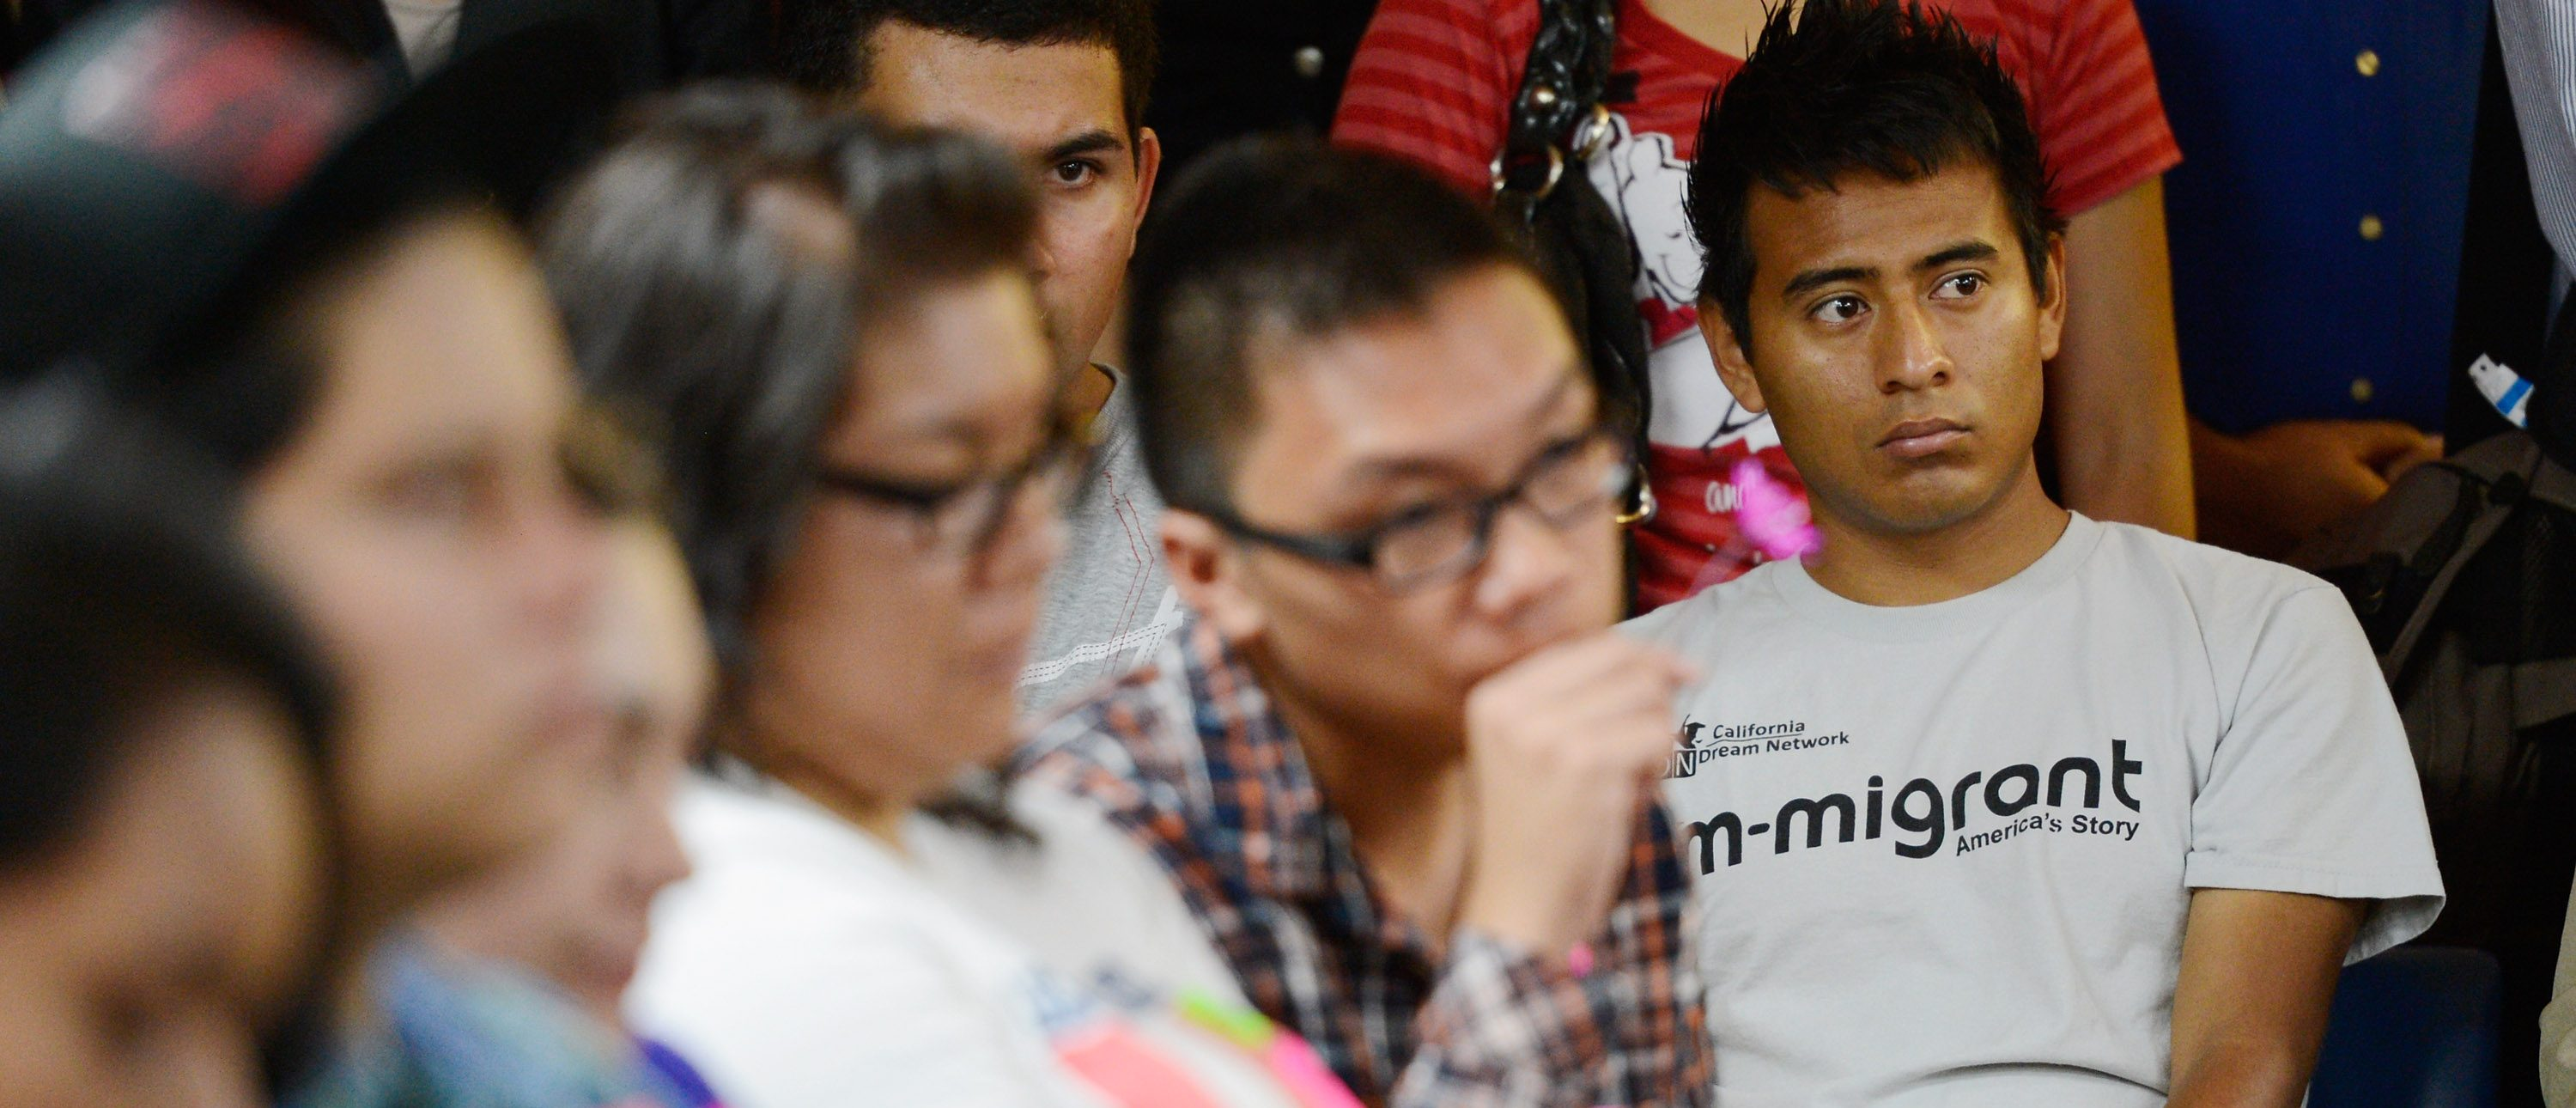 LOS ANGELES, CA - AUGUST 15: A group of immigrants, known as DREAMers, hold flowers as they listen to a news conference to kick off a new program called Deferred Action for Childhood Arrivals at the Coalition for Humane Immigrant Rights of Los Angeles on August 15, 2012 in Los Angeles, California. Under a new program established by the Obama administration undocumented youth who qualify for the program, called Deferred Action for Childhood Arrivals, can file applications from the U.S. Citizenship and Immigration Services website to avoid deportation and obtain the right to work (Photo by Kevork Djansezian/Getty Images)